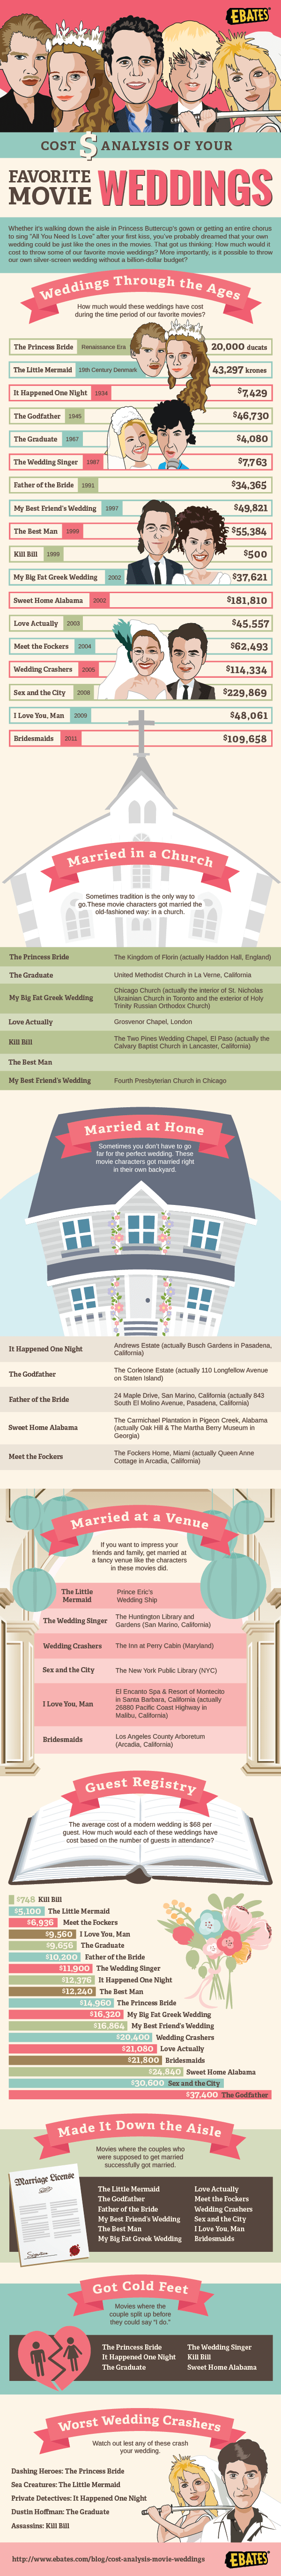 The Cost of Silver-Screen Weddings (In Case You Plan to Borrow Ideas!) - Infographic